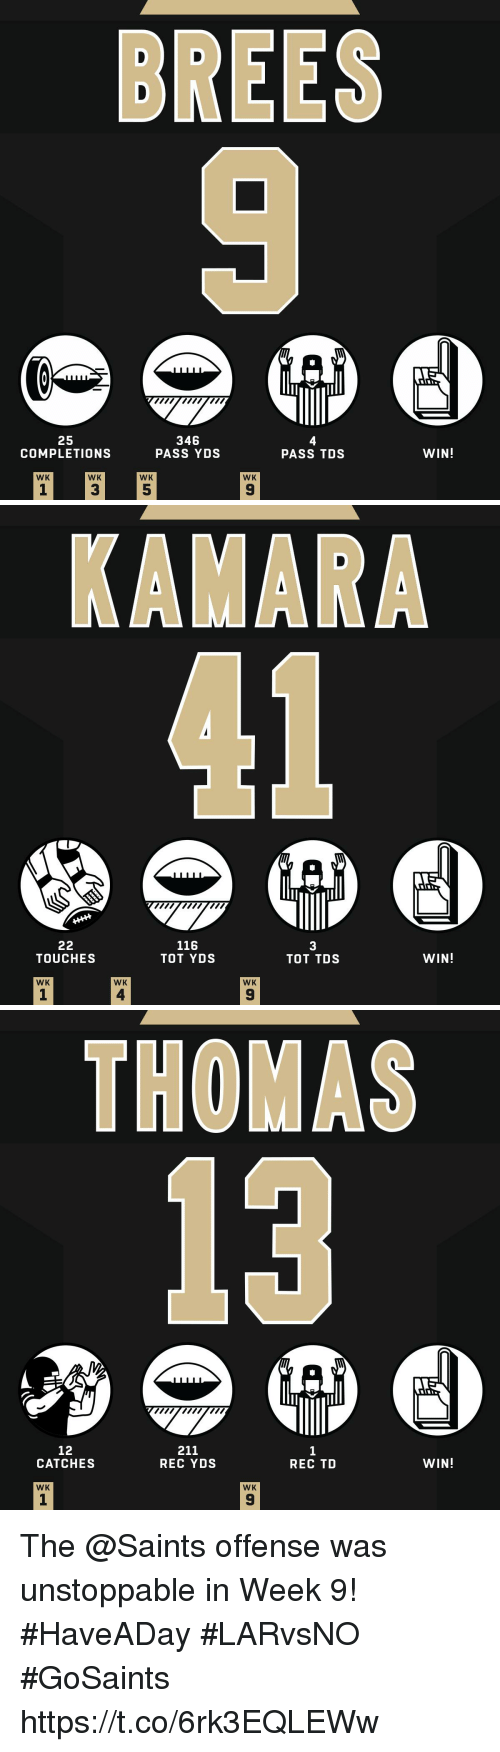 Memes, New Orleans Saints, and 🤖: BREES  25  COMPLETIONS  346  PASS YDS  4  PASS TDS  WIN!  WK  WK  WK  WK  3  5  9   KAMARA  116  TOT YDS  3  TOT TDS  TOUCHES  WIN!  WK  WK  WK  1  4  9   THOMAS  13  12  CATCHES  211  REC YDS  REC TD  WIN!  WK  WK  1  9 The @Saints offense was unstoppable in Week 9! #HaveADay #LARvsNO  #GoSaints https://t.co/6rk3EQLEWw